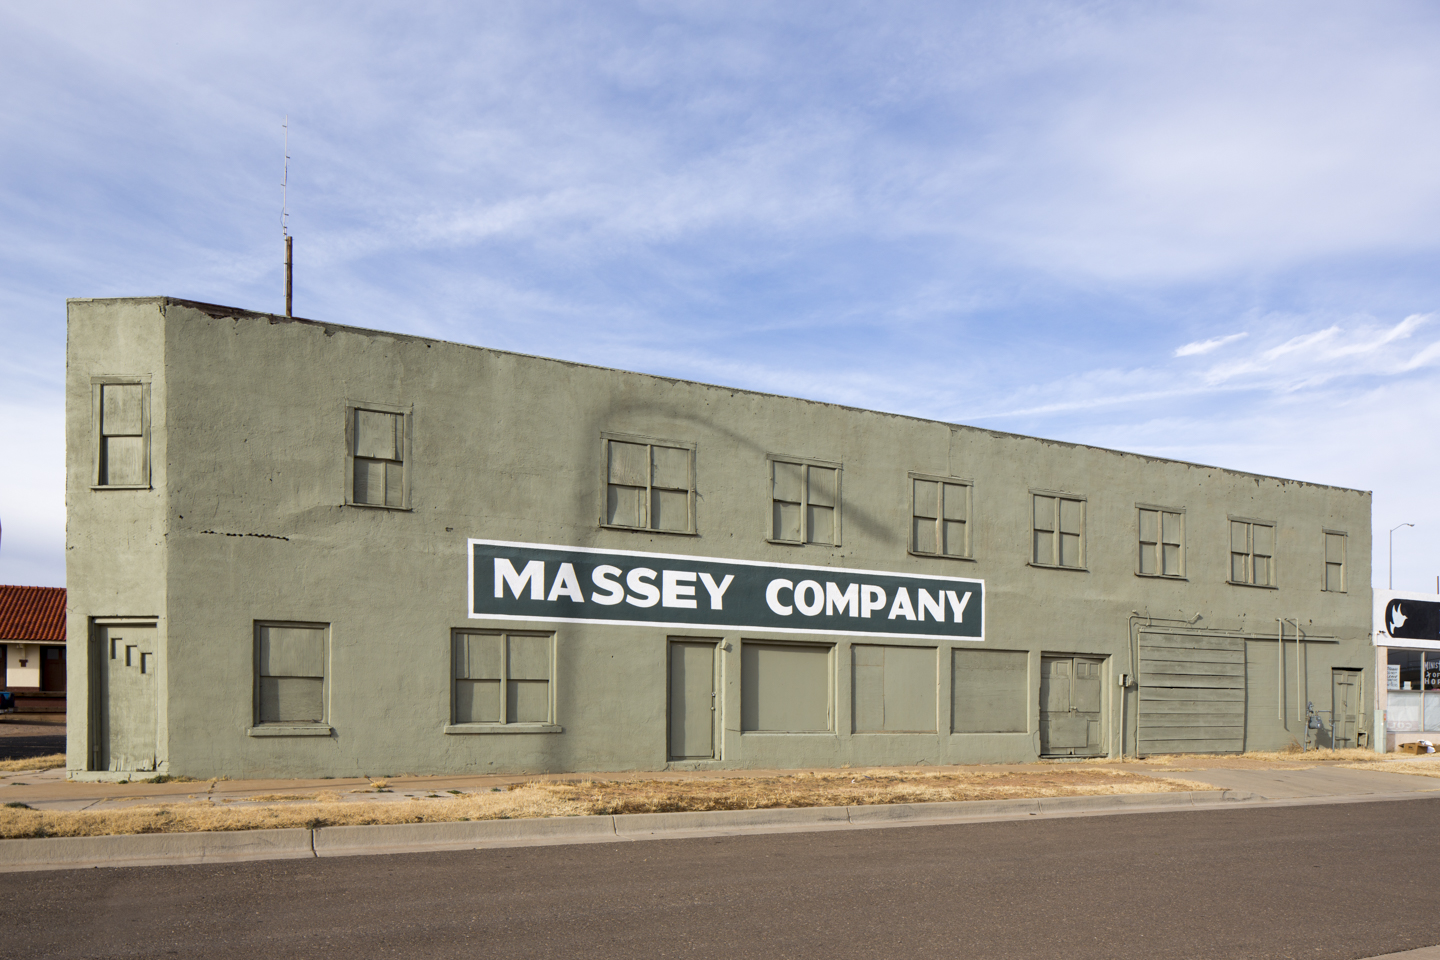 Massey Company, Tucumcari, New Mexico, December 6, 2014